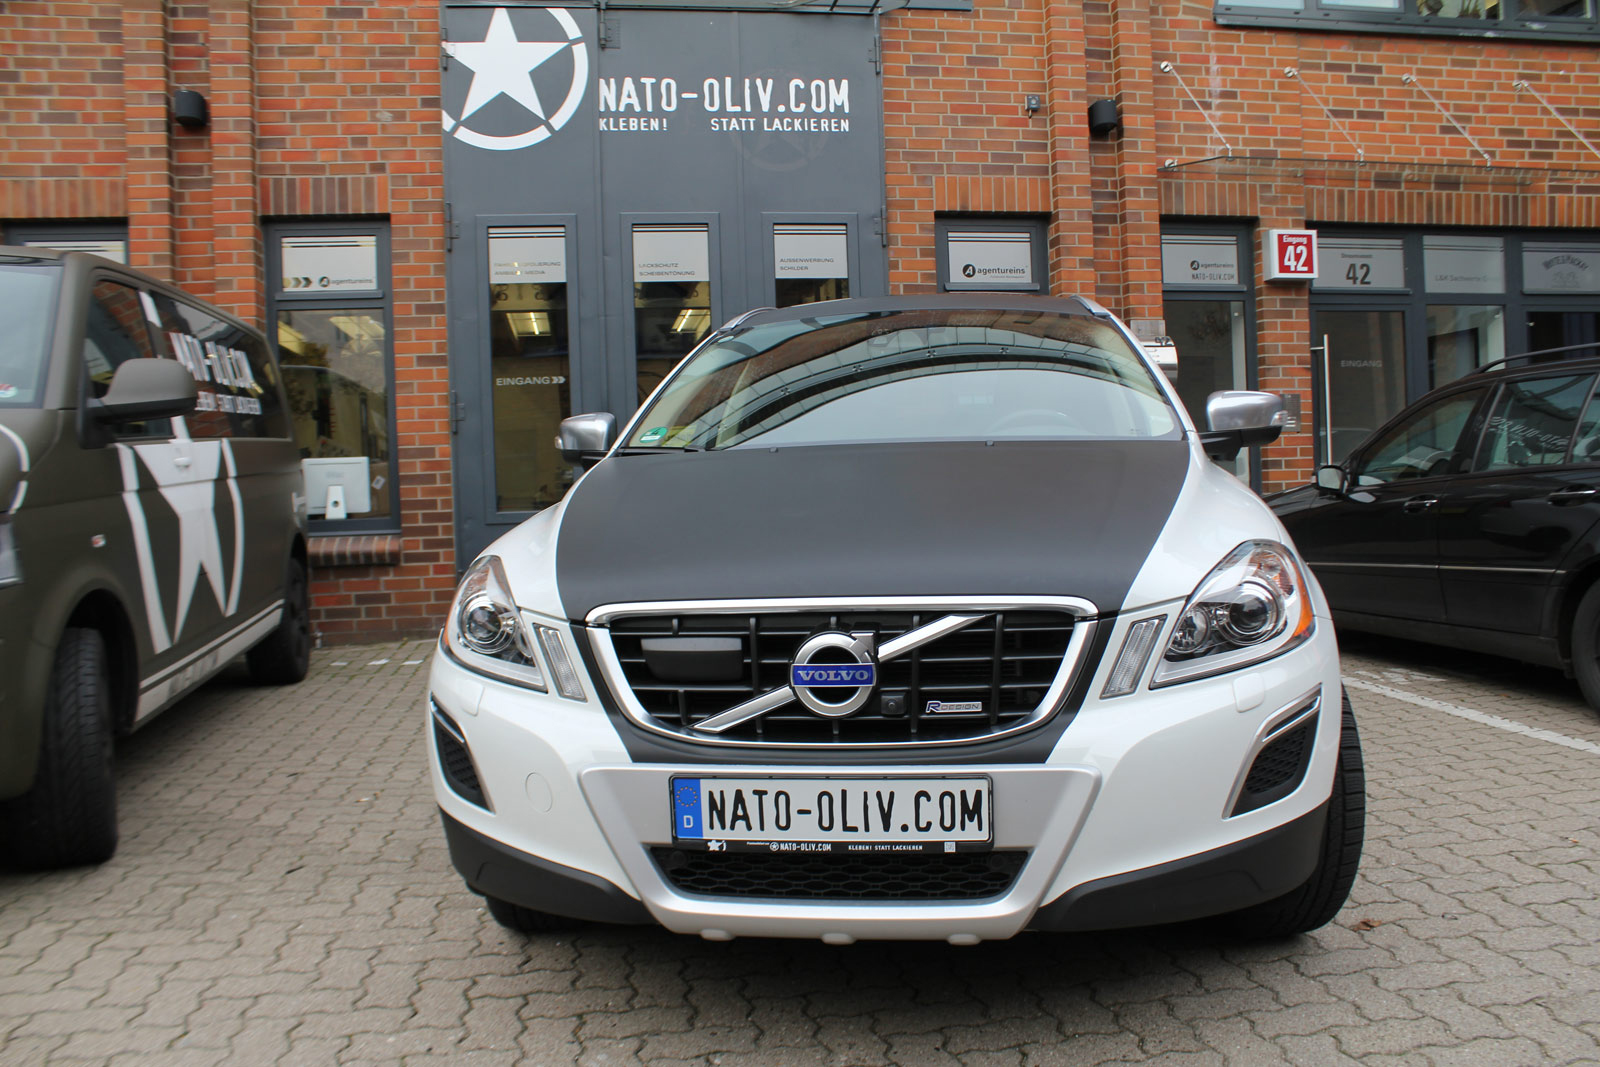 volvo xc60 teilfolierung in schwarz matt nato. Black Bedroom Furniture Sets. Home Design Ideas